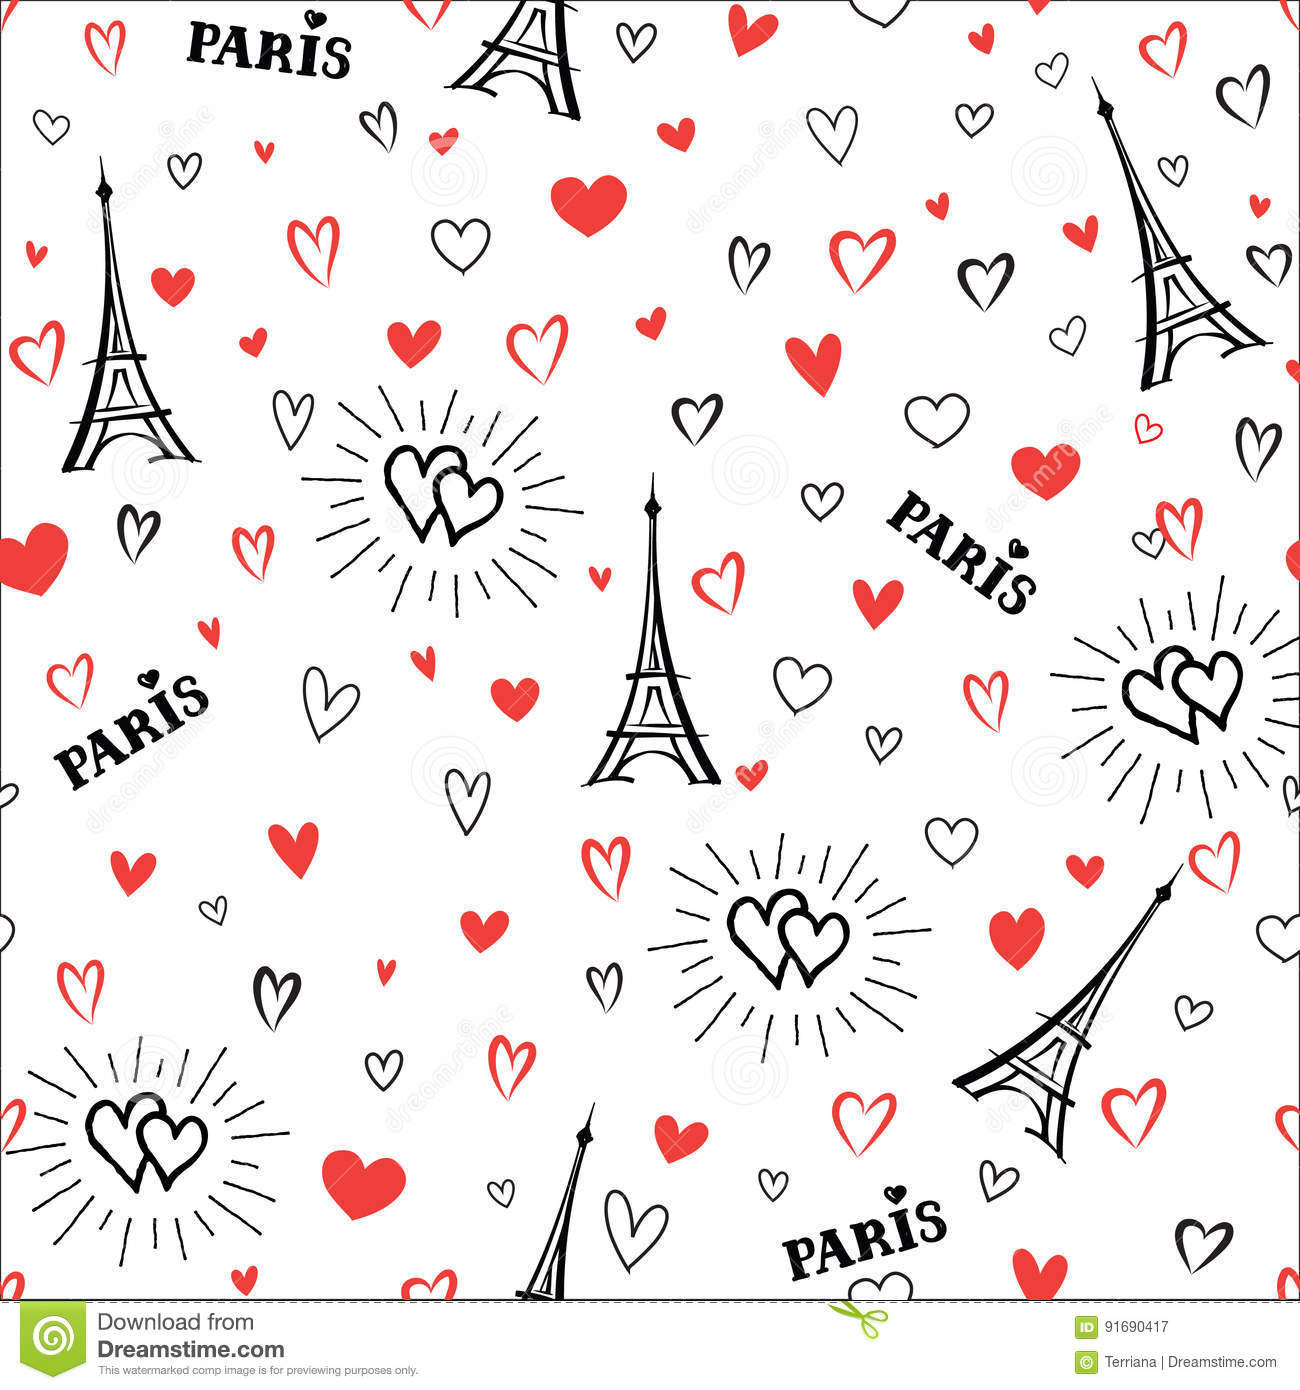 Download Travel France Seamless Pattern Love Paris City Wallpaper Stock Illustration